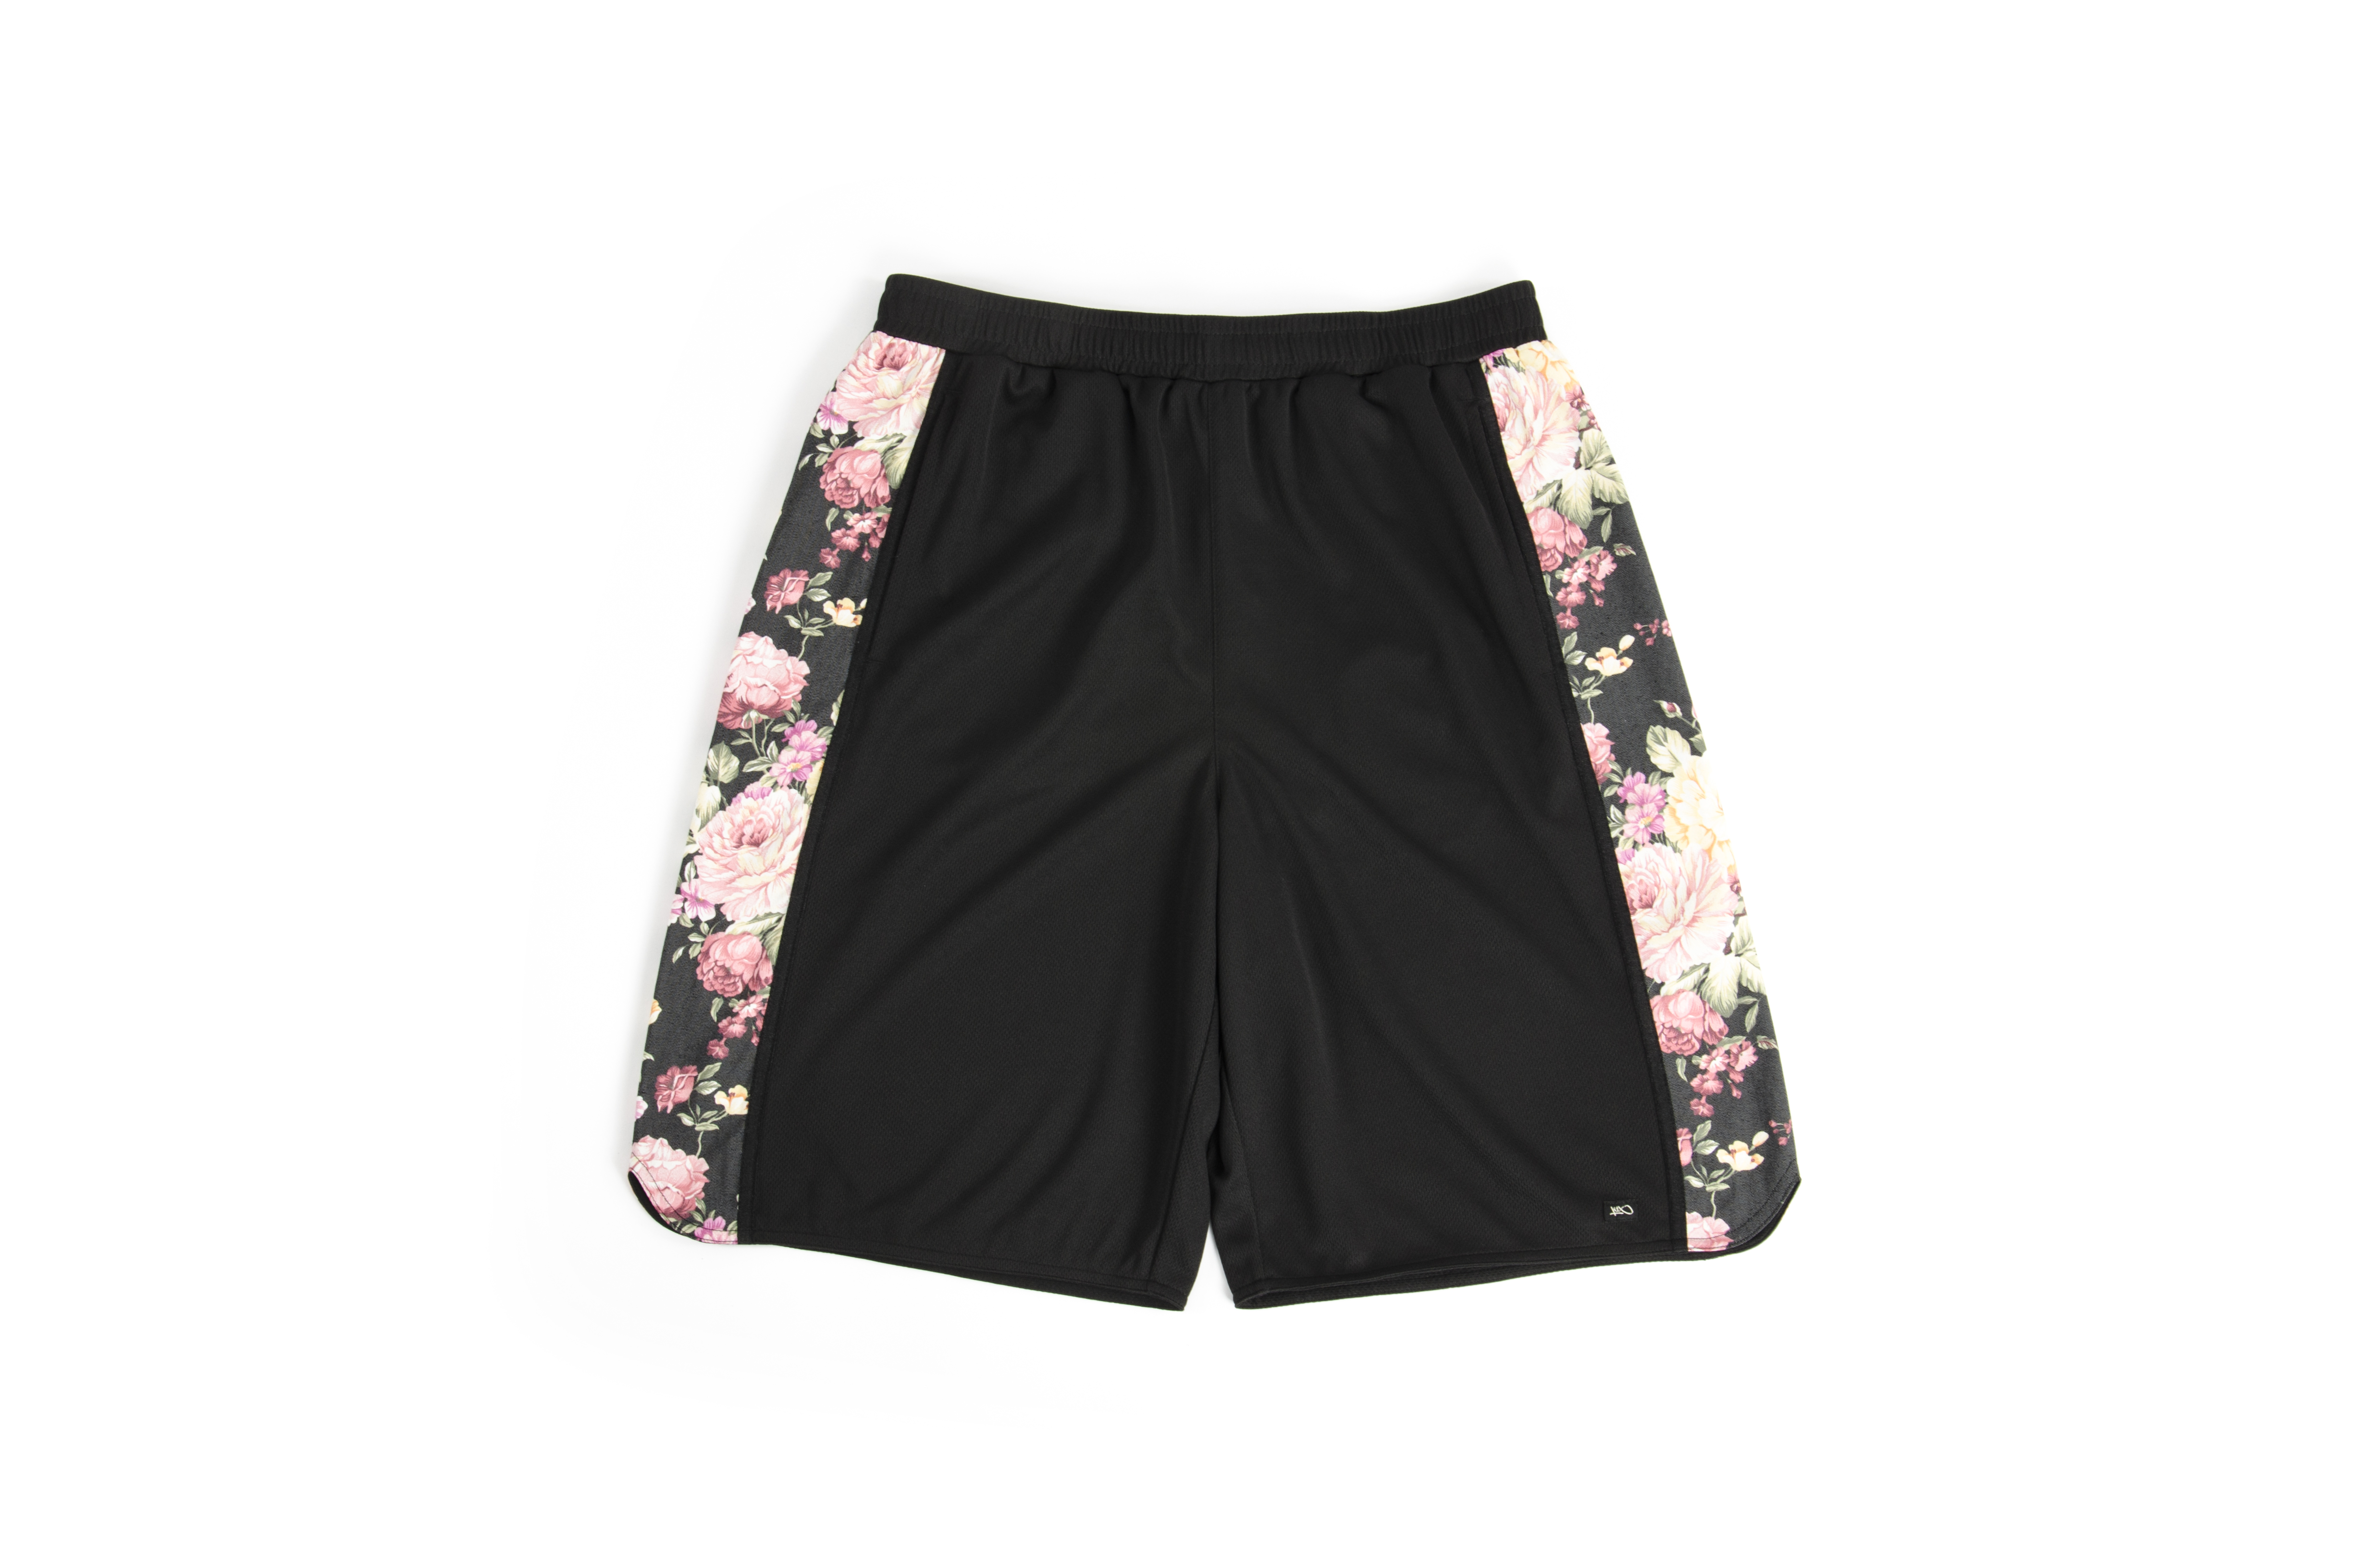 K1X_Selleck_Pack_13_panel_shorts